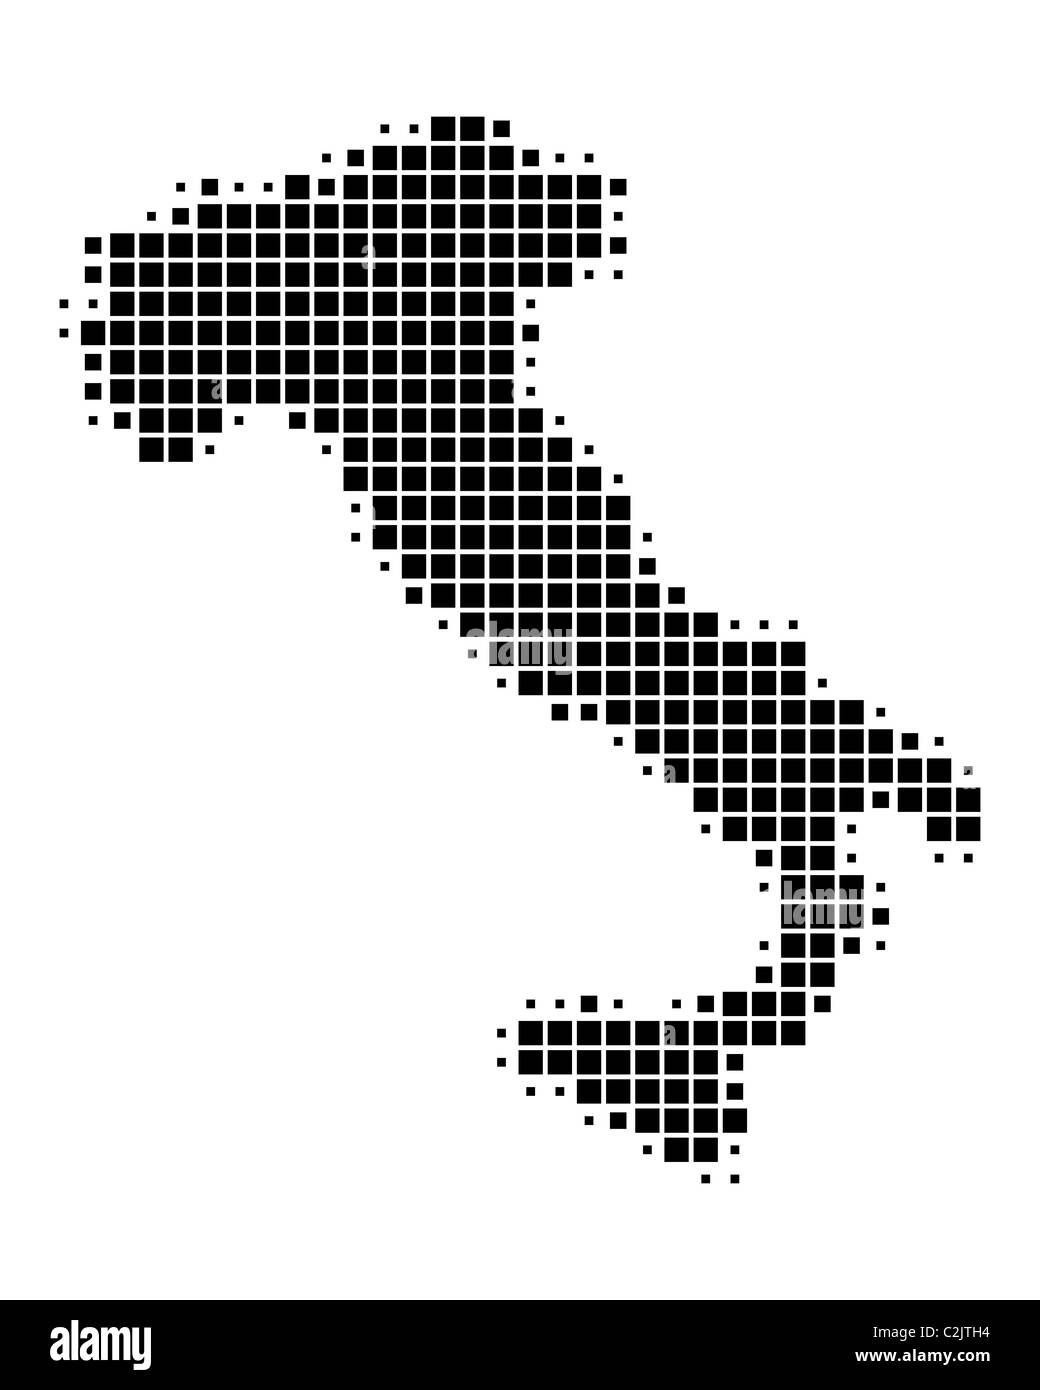 Map Of Italy Black And White.Map Of Italy Black And White Stock Photos Images Alamy